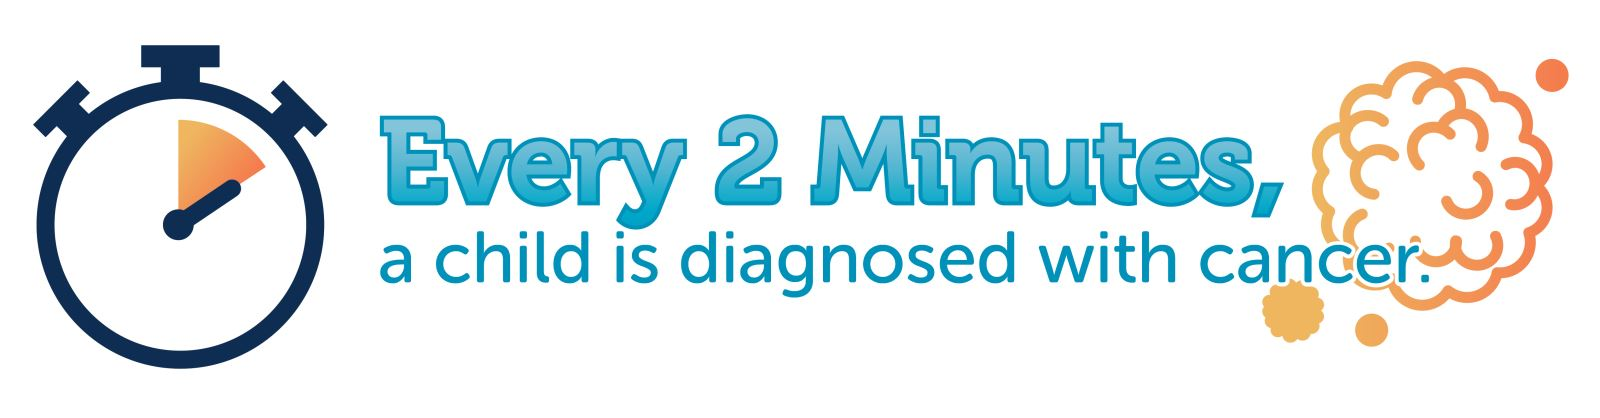 Every two minutes, a child is diagnosed with cancer graphic